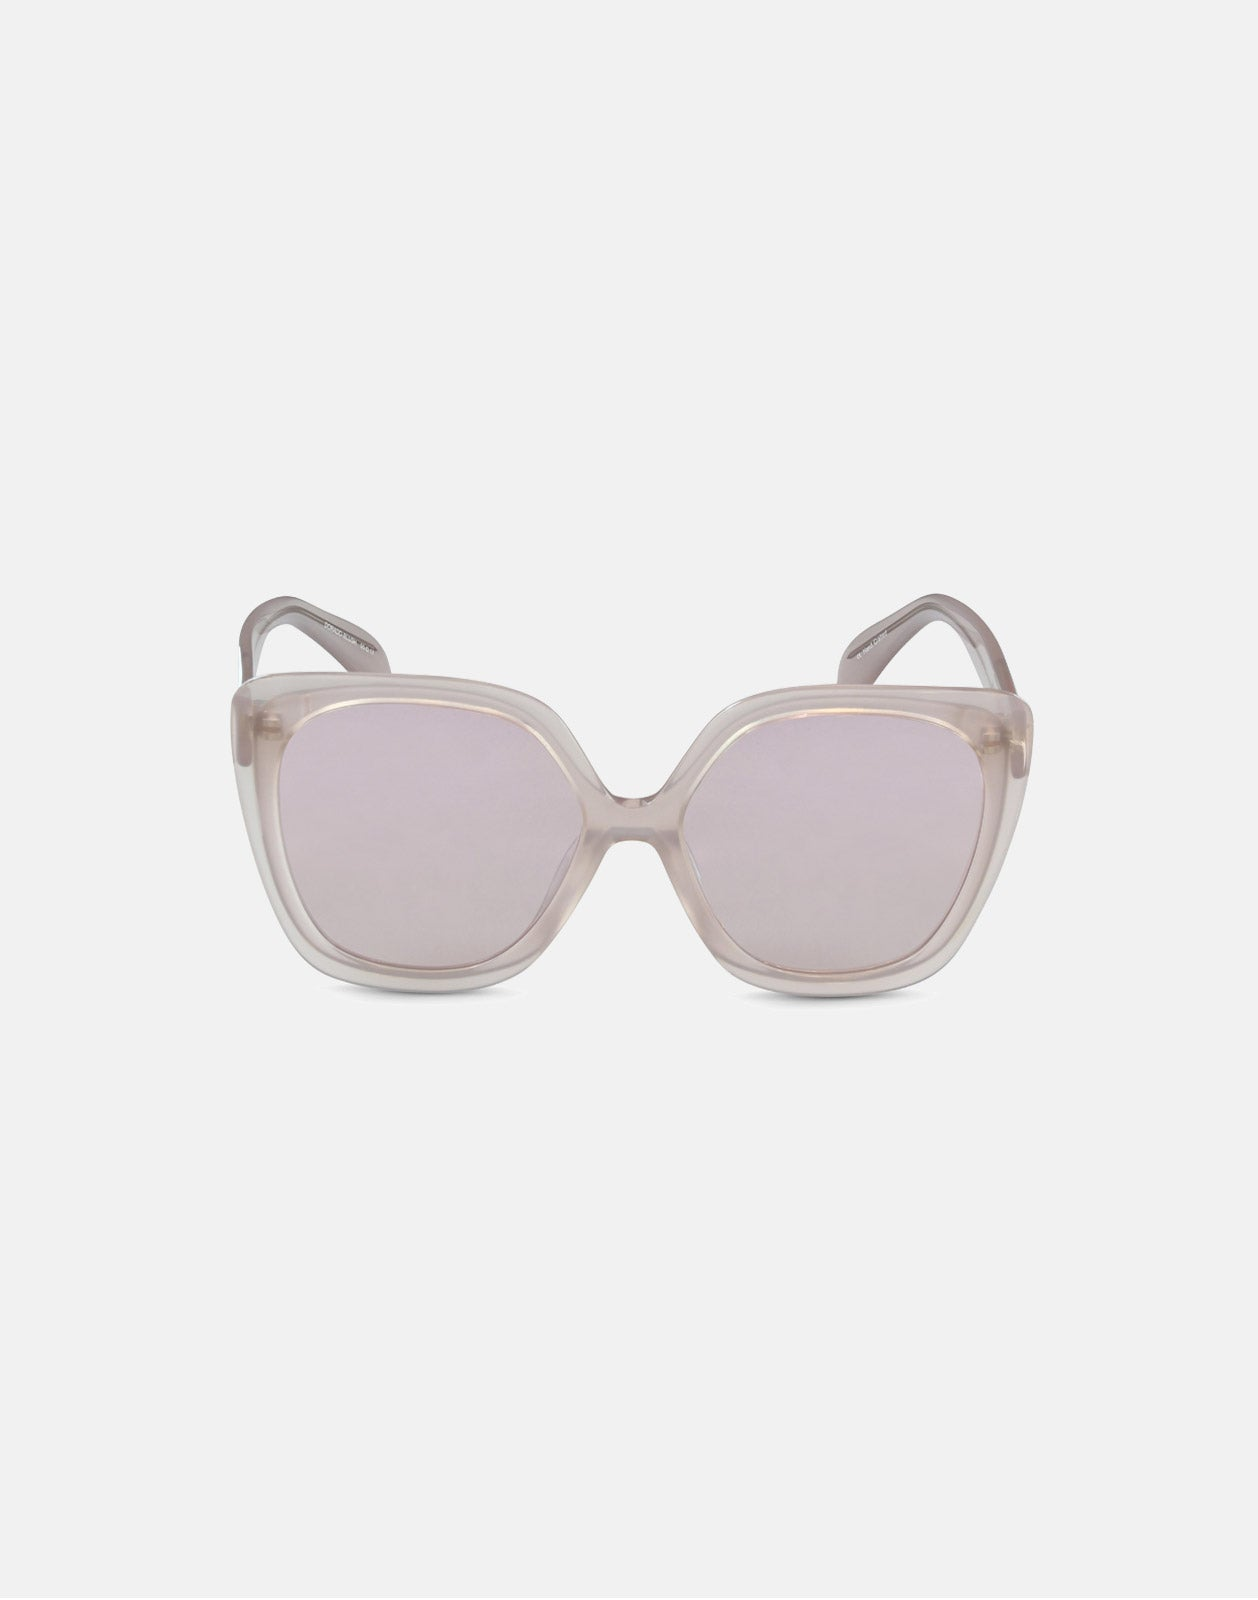 2ca62e6c74de7 ... Dorado Sunglasses in blush · Dorado Blush Sunglasses front view ...